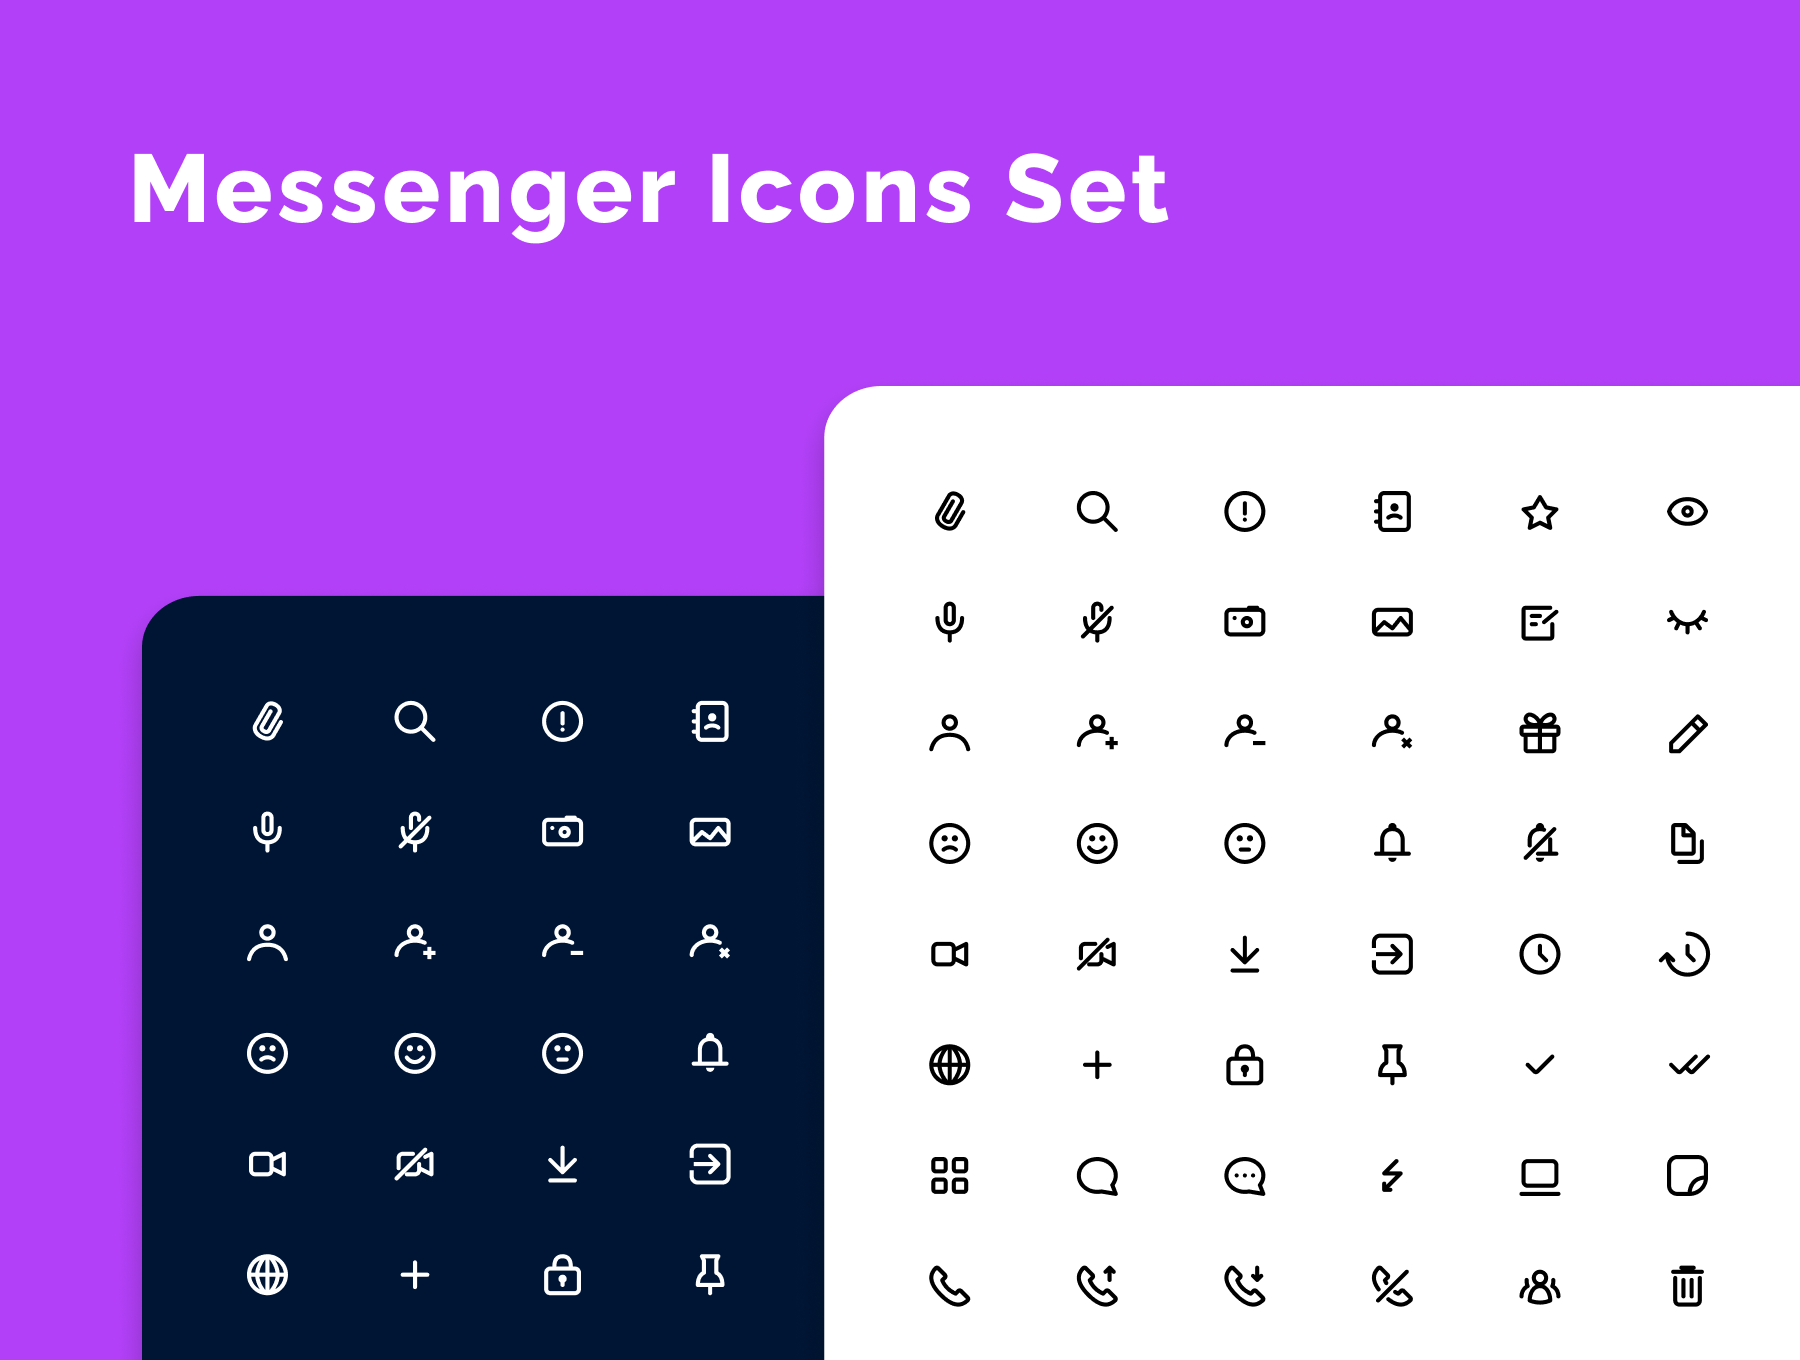 Messenger Icons Set